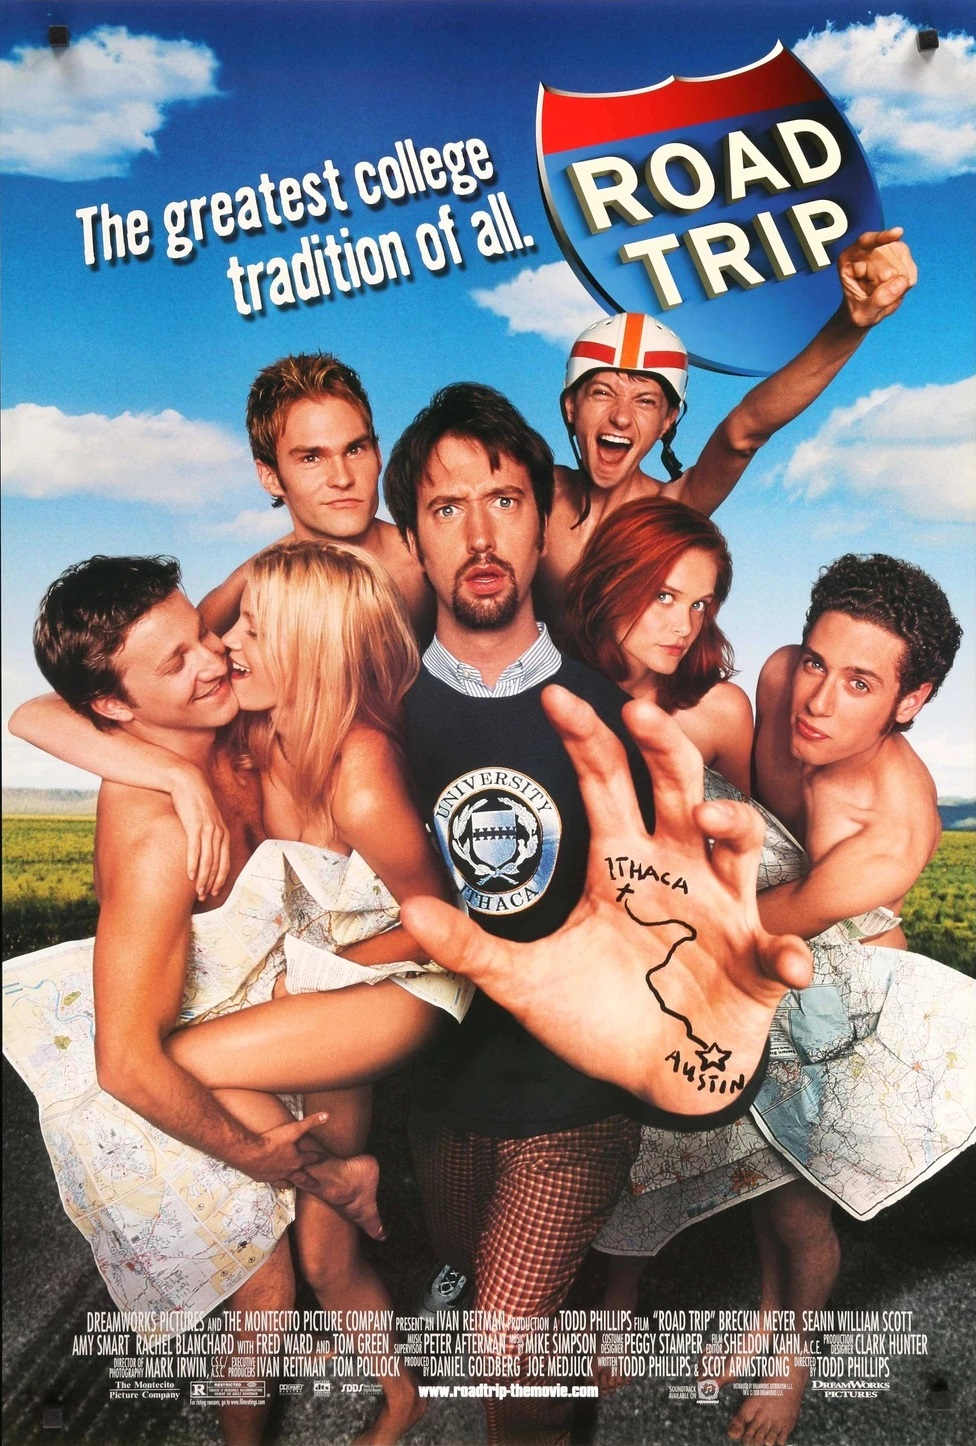 Fragile and Varied Masculinities:  Road Trip and the Odd World of the 2000s